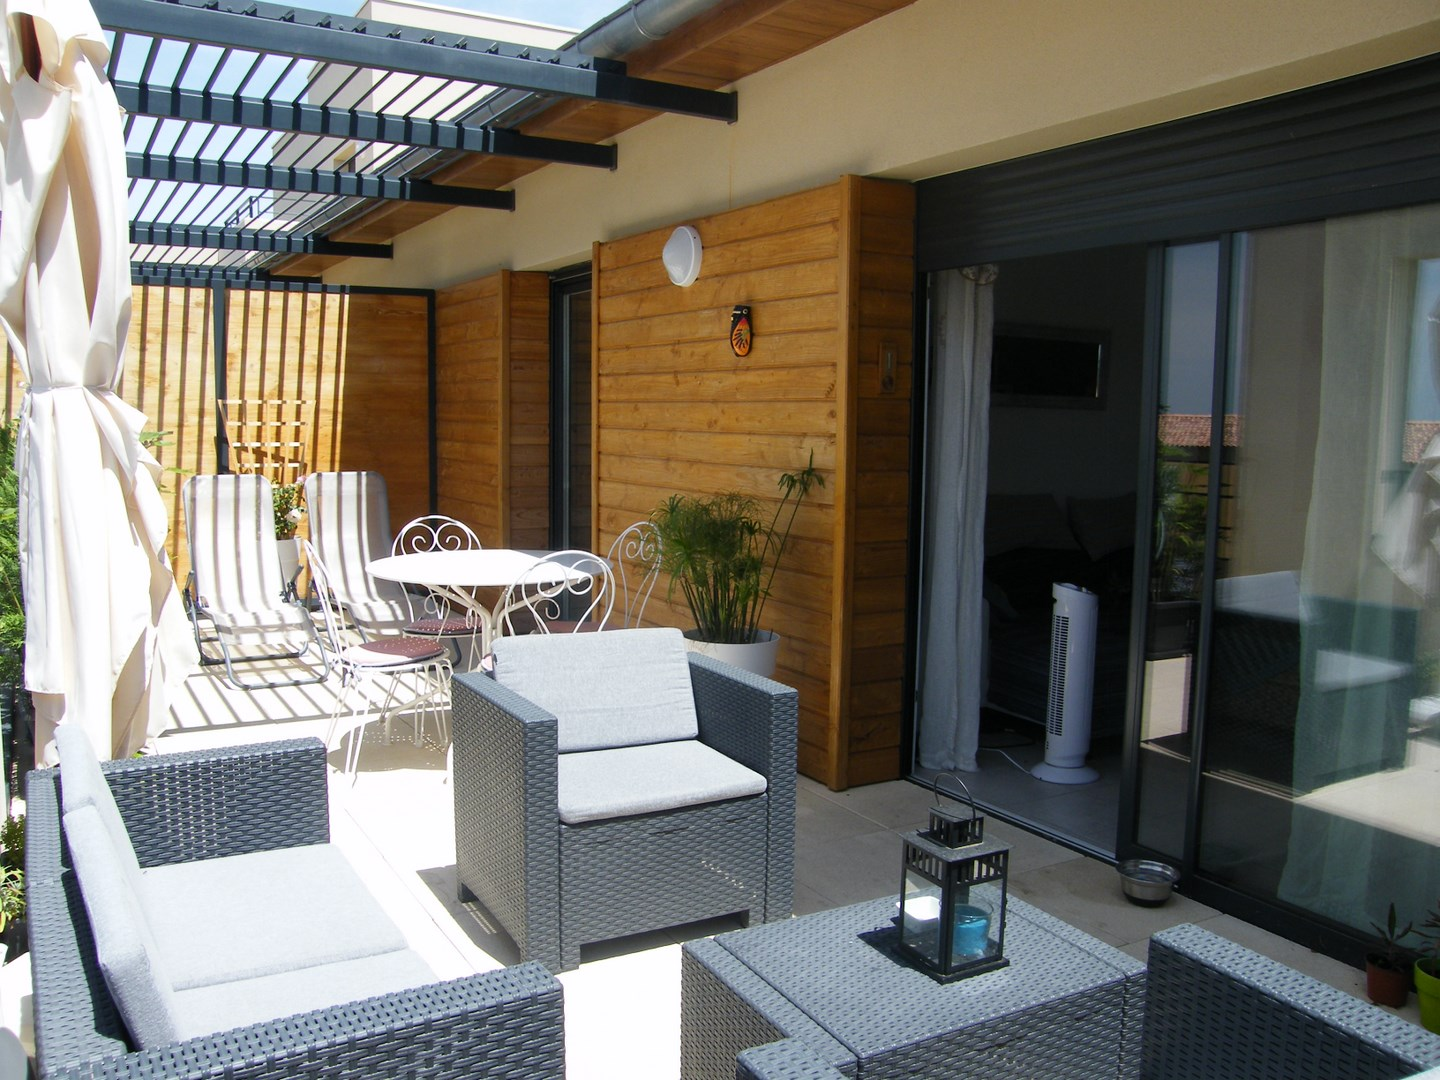 Ventes appartement t2 bbc f2 bbc robion r sidence for Vente appartement avec terrasse